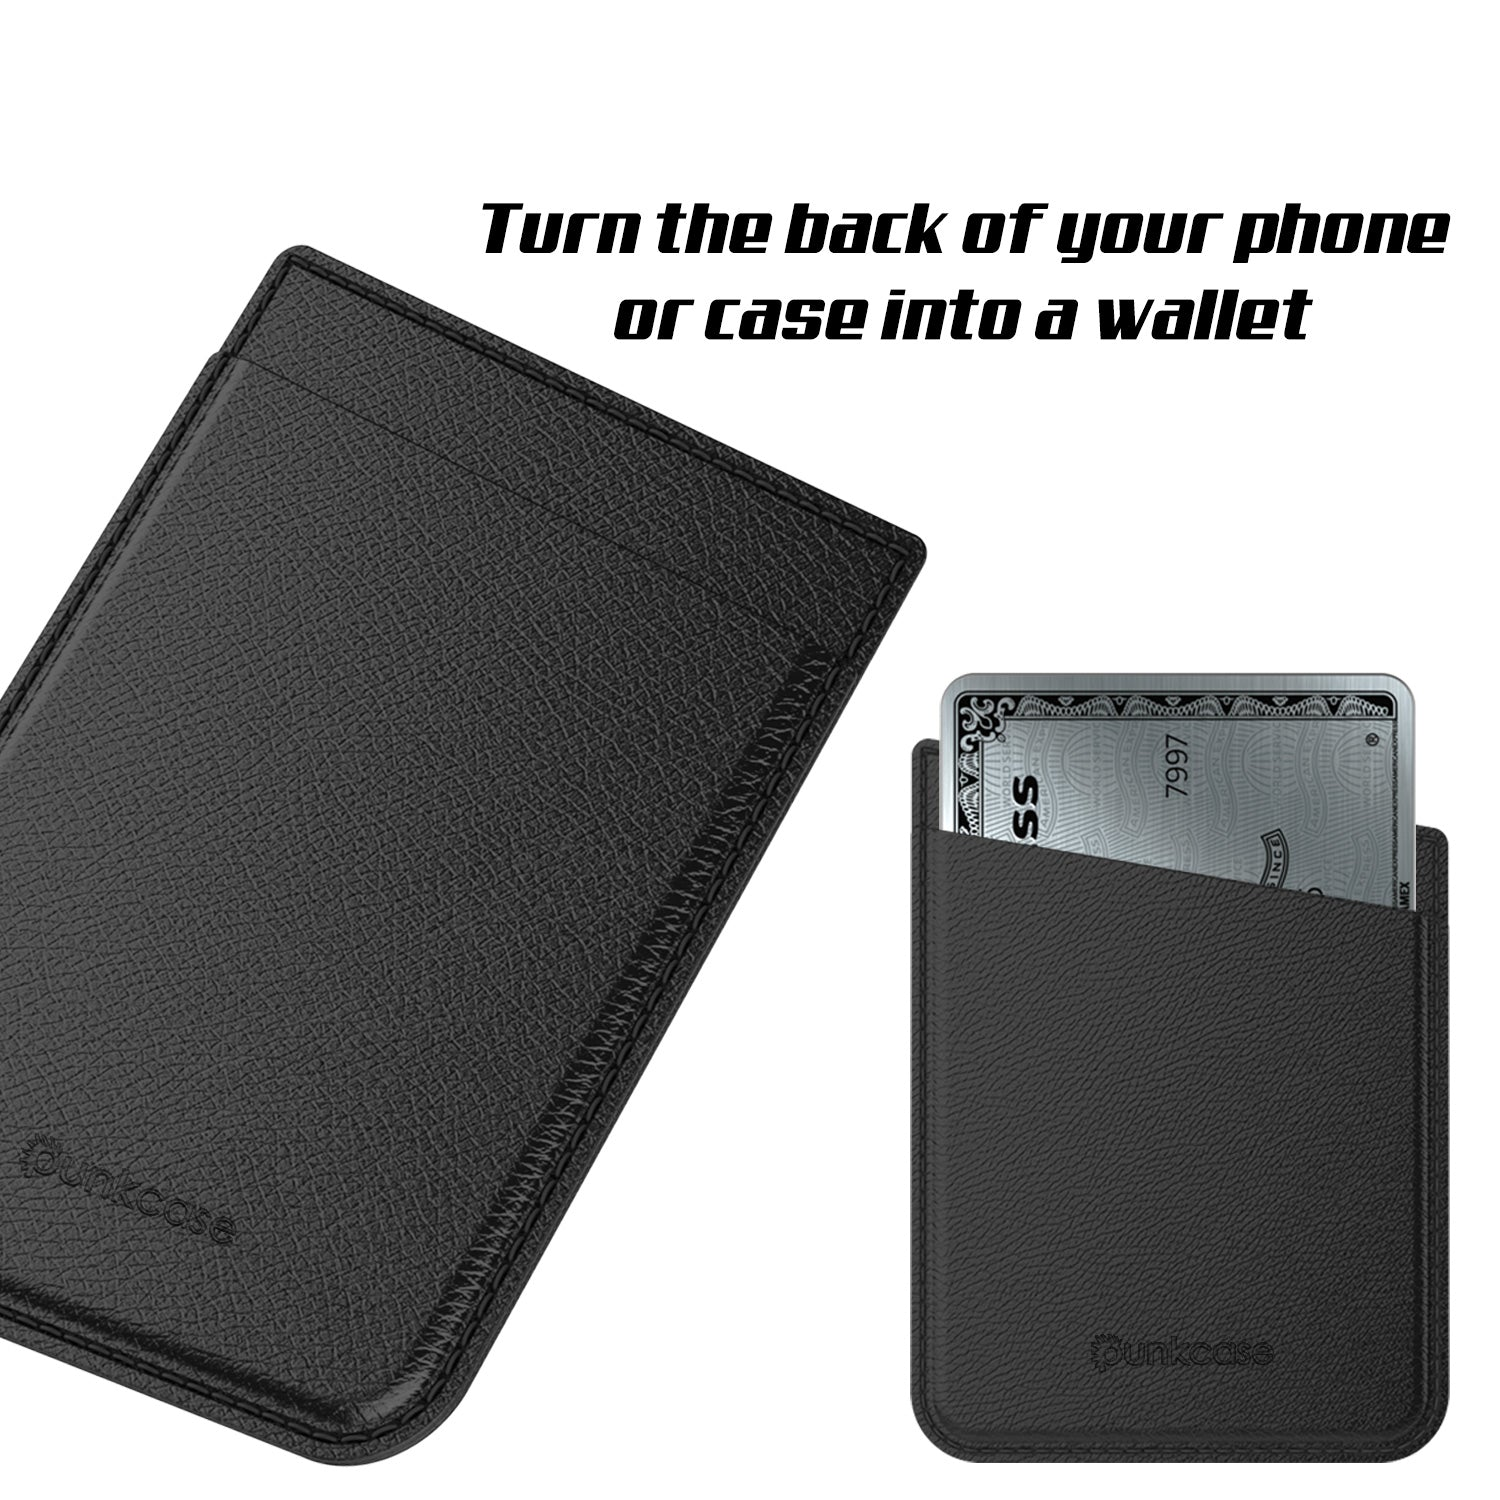 PunkCase CardStud Deluxe Stick On Wallet | Adhesive Card Holder Attachment for Back of iPhone, Android & More | Leather Pouch | [Black]